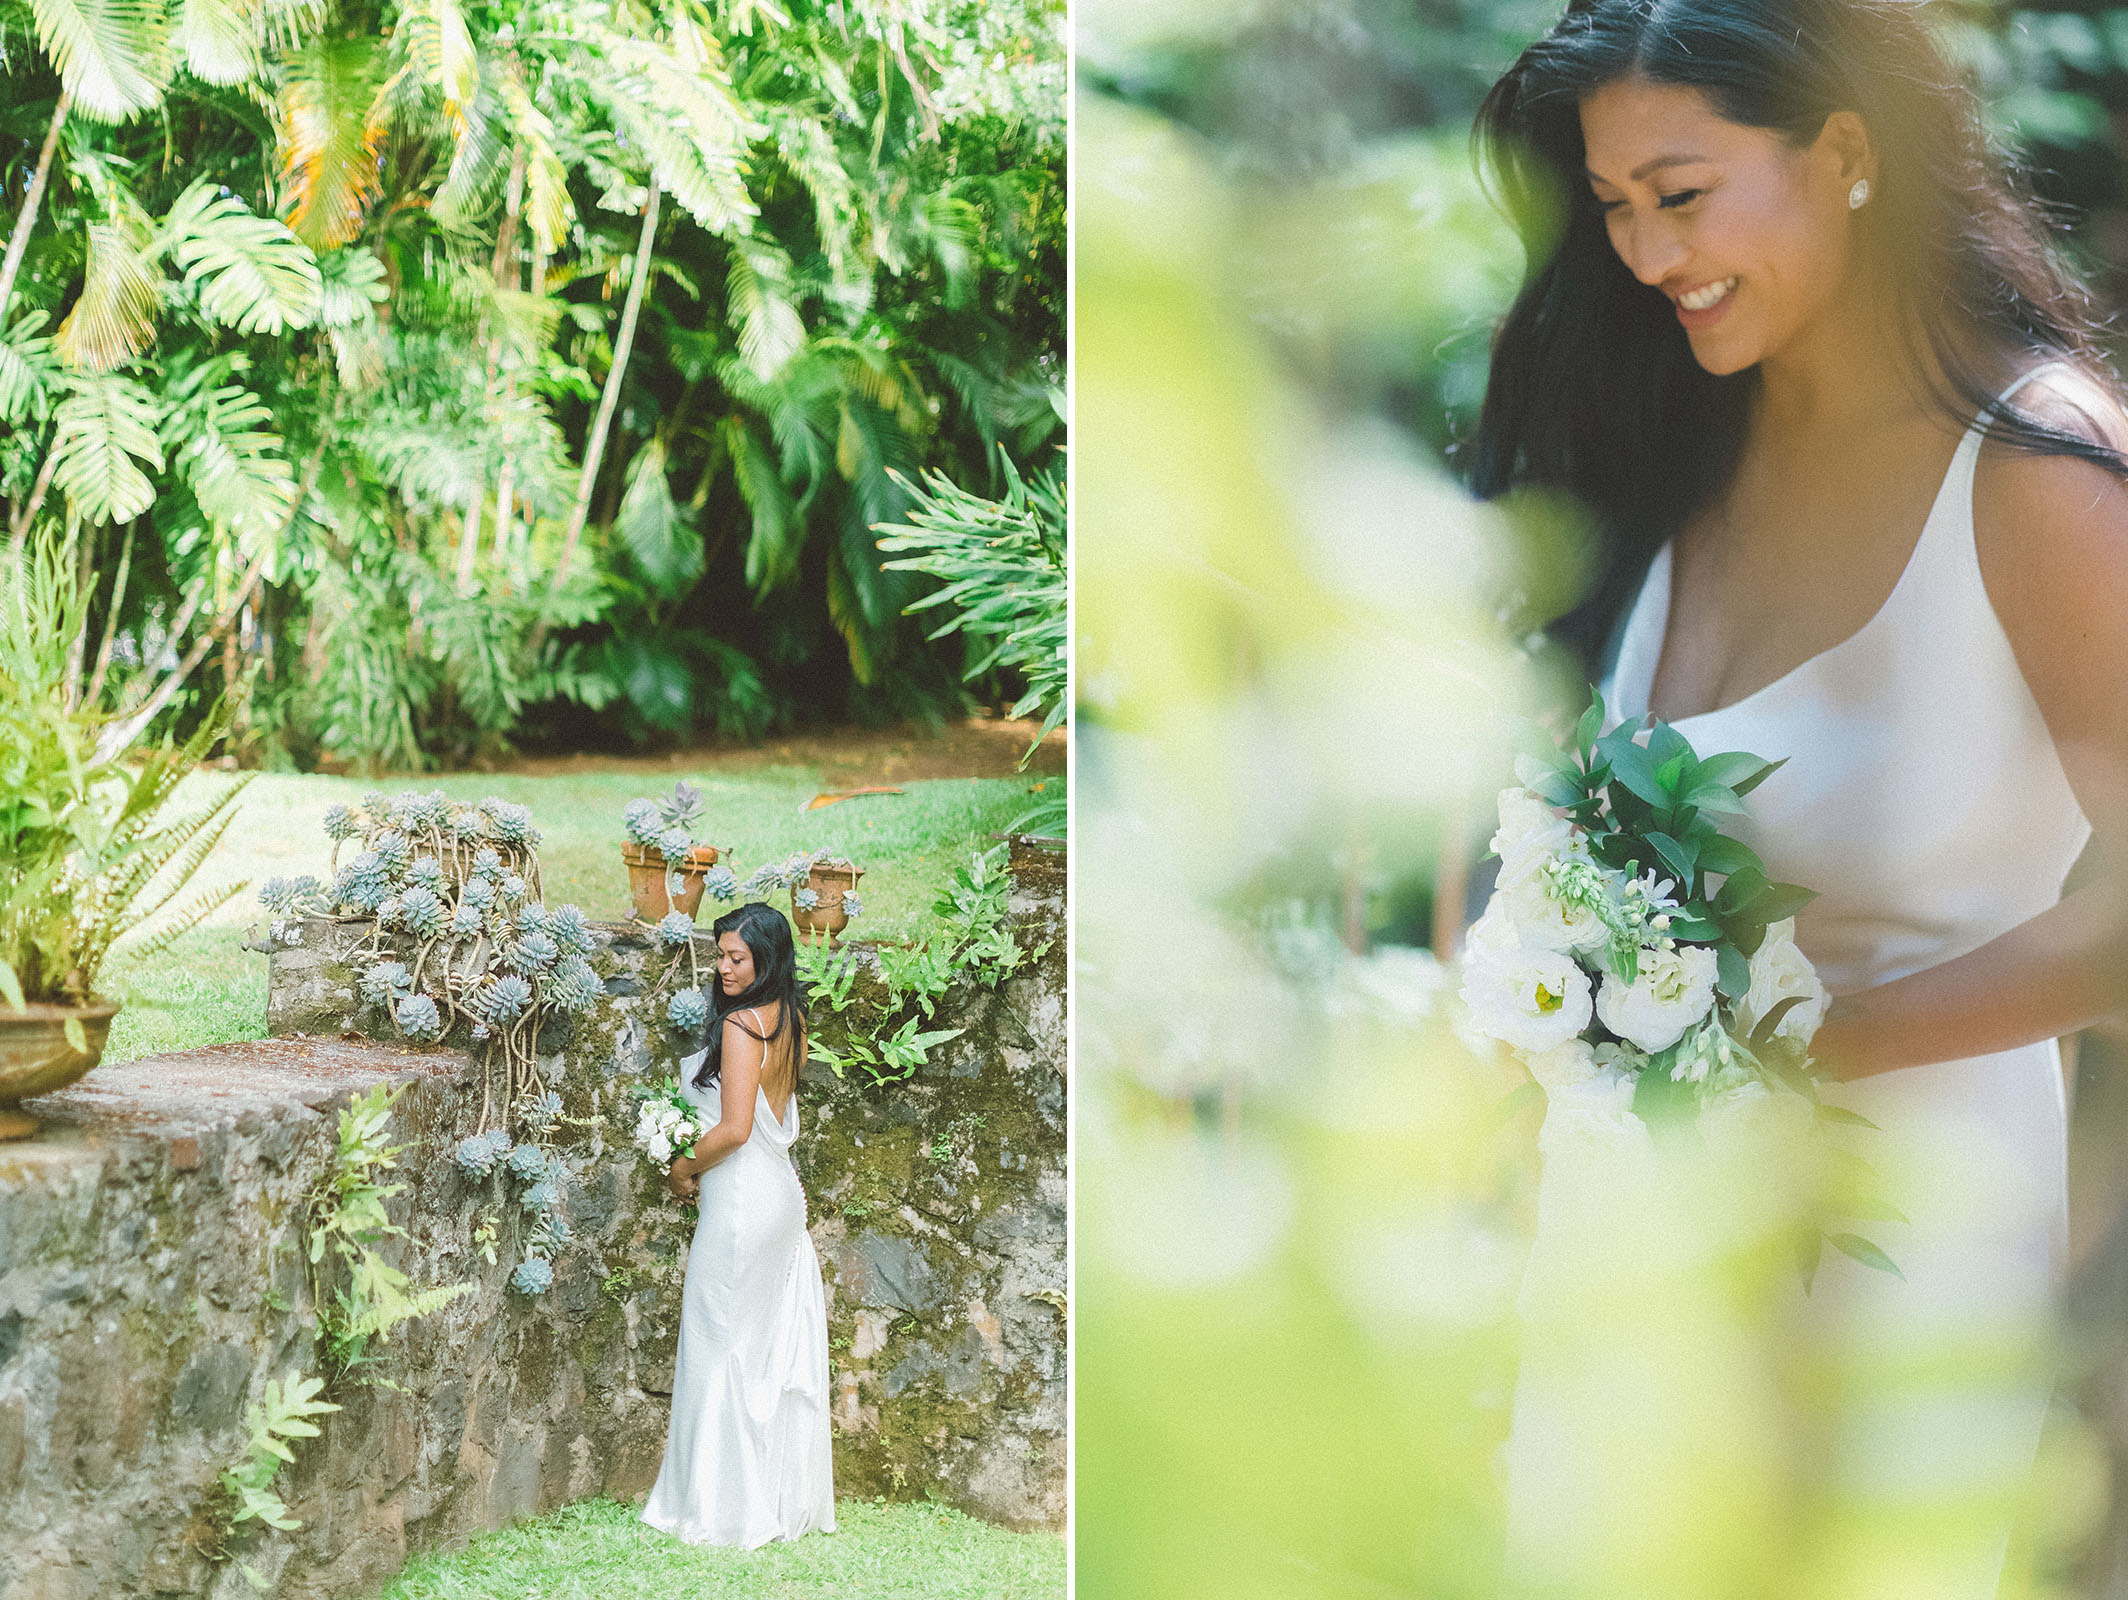 Haiku Mill Luxe Maui Wedding20190625_0272 copy.jpg